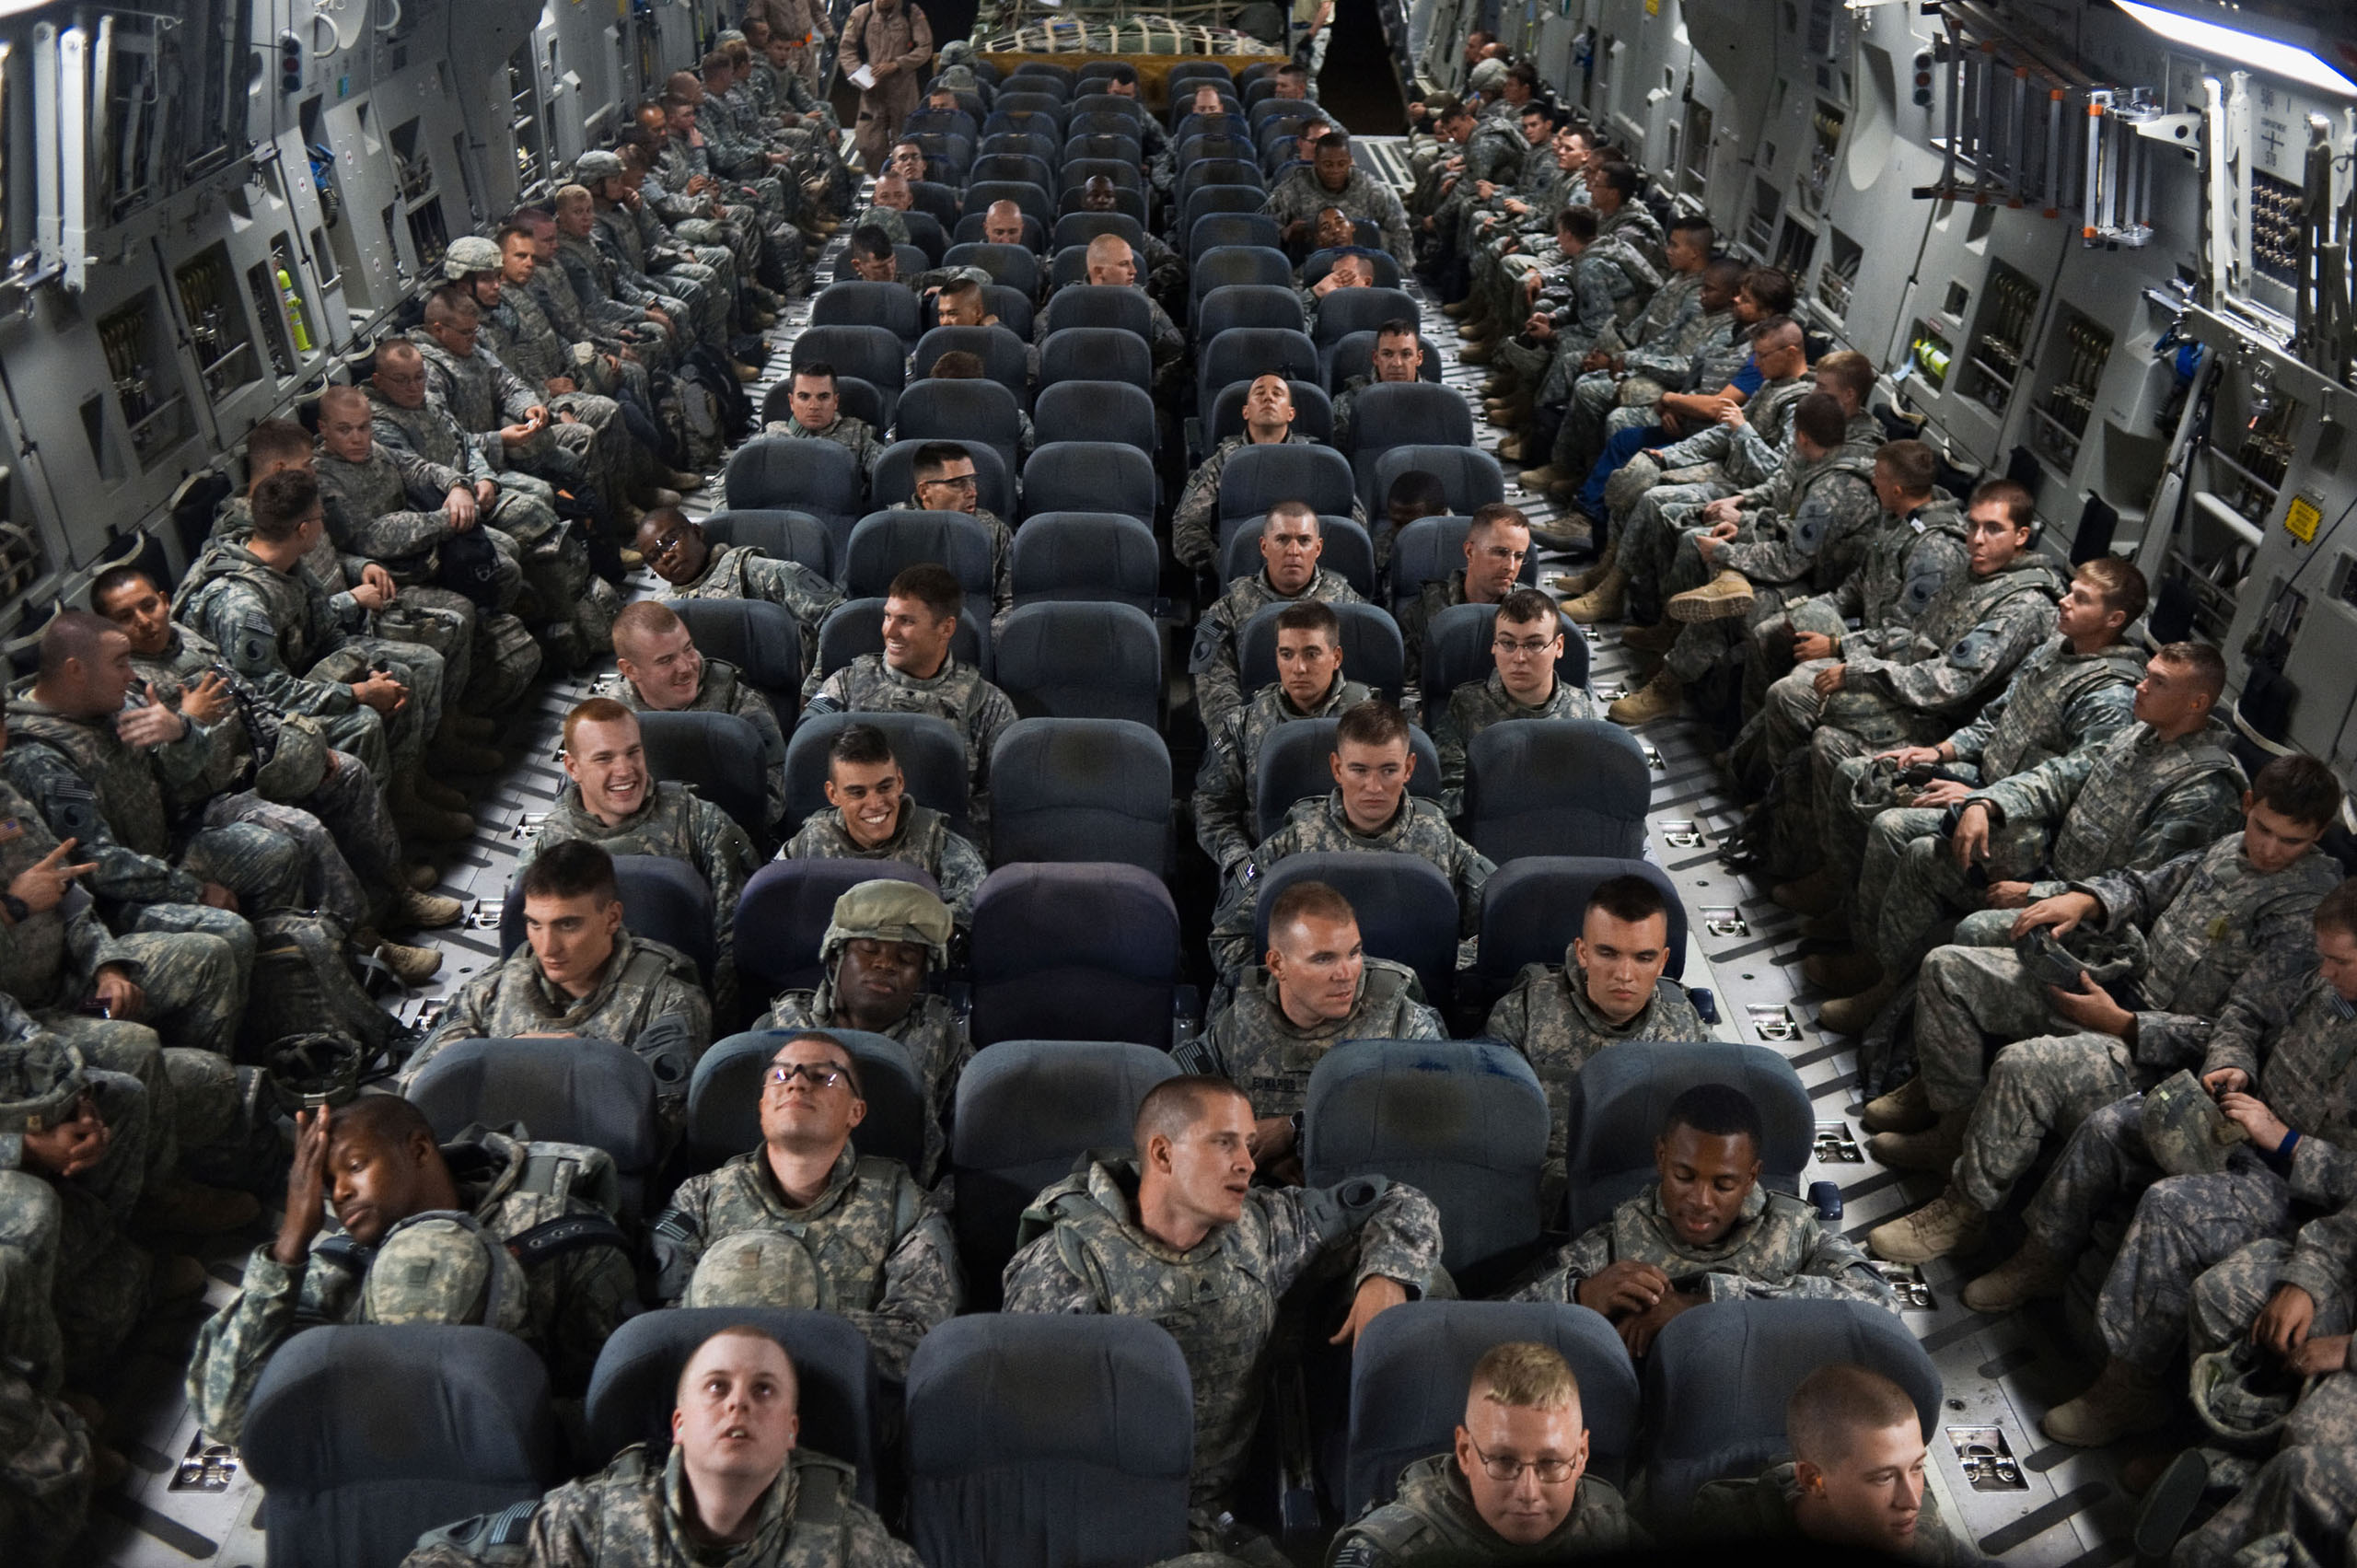 Soldiers from the Virginia National Guard's 1st Battalion, 116th Infantry Regiment, head back to the U.S. from Camp Adder, having served eight months, markingthe end of the U.S. combat mission in Iraq after seven years, Aug. 5, 2010.